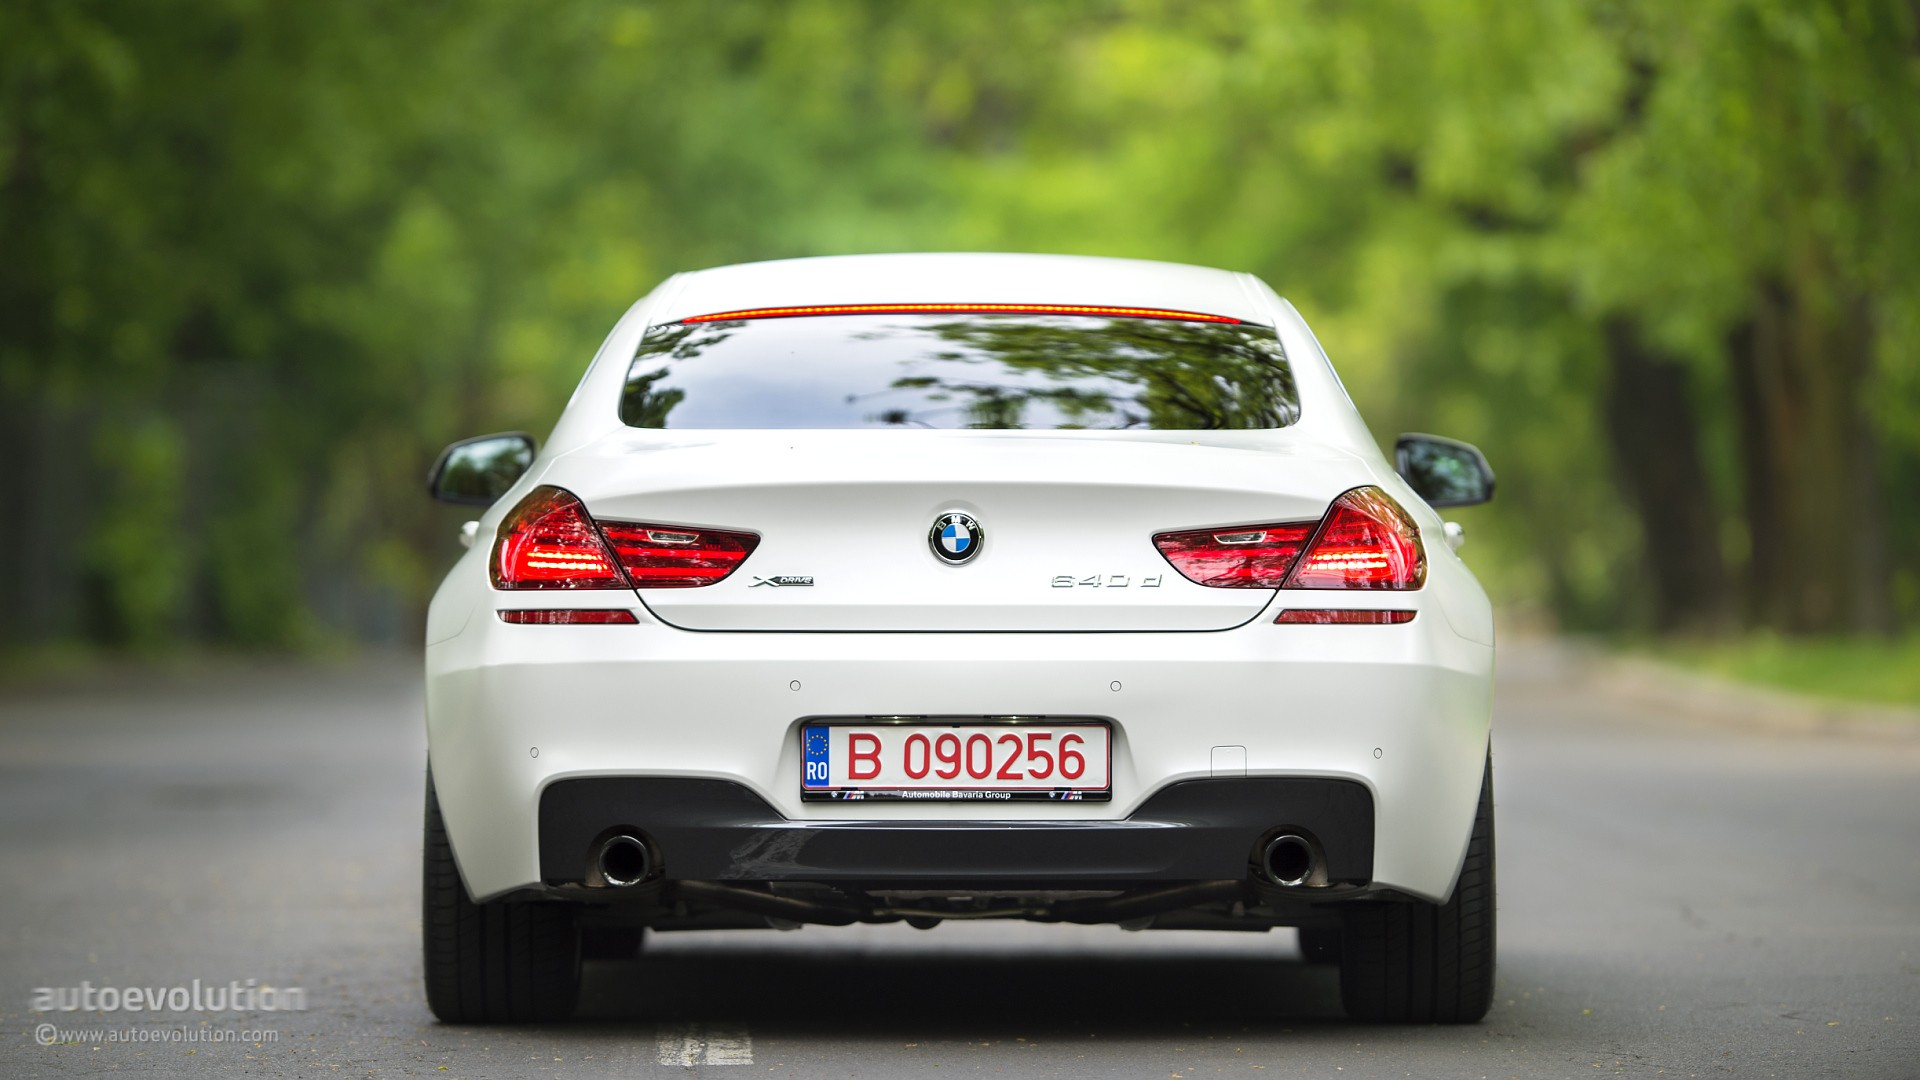 Bmw 1 series m sport coupe review 14